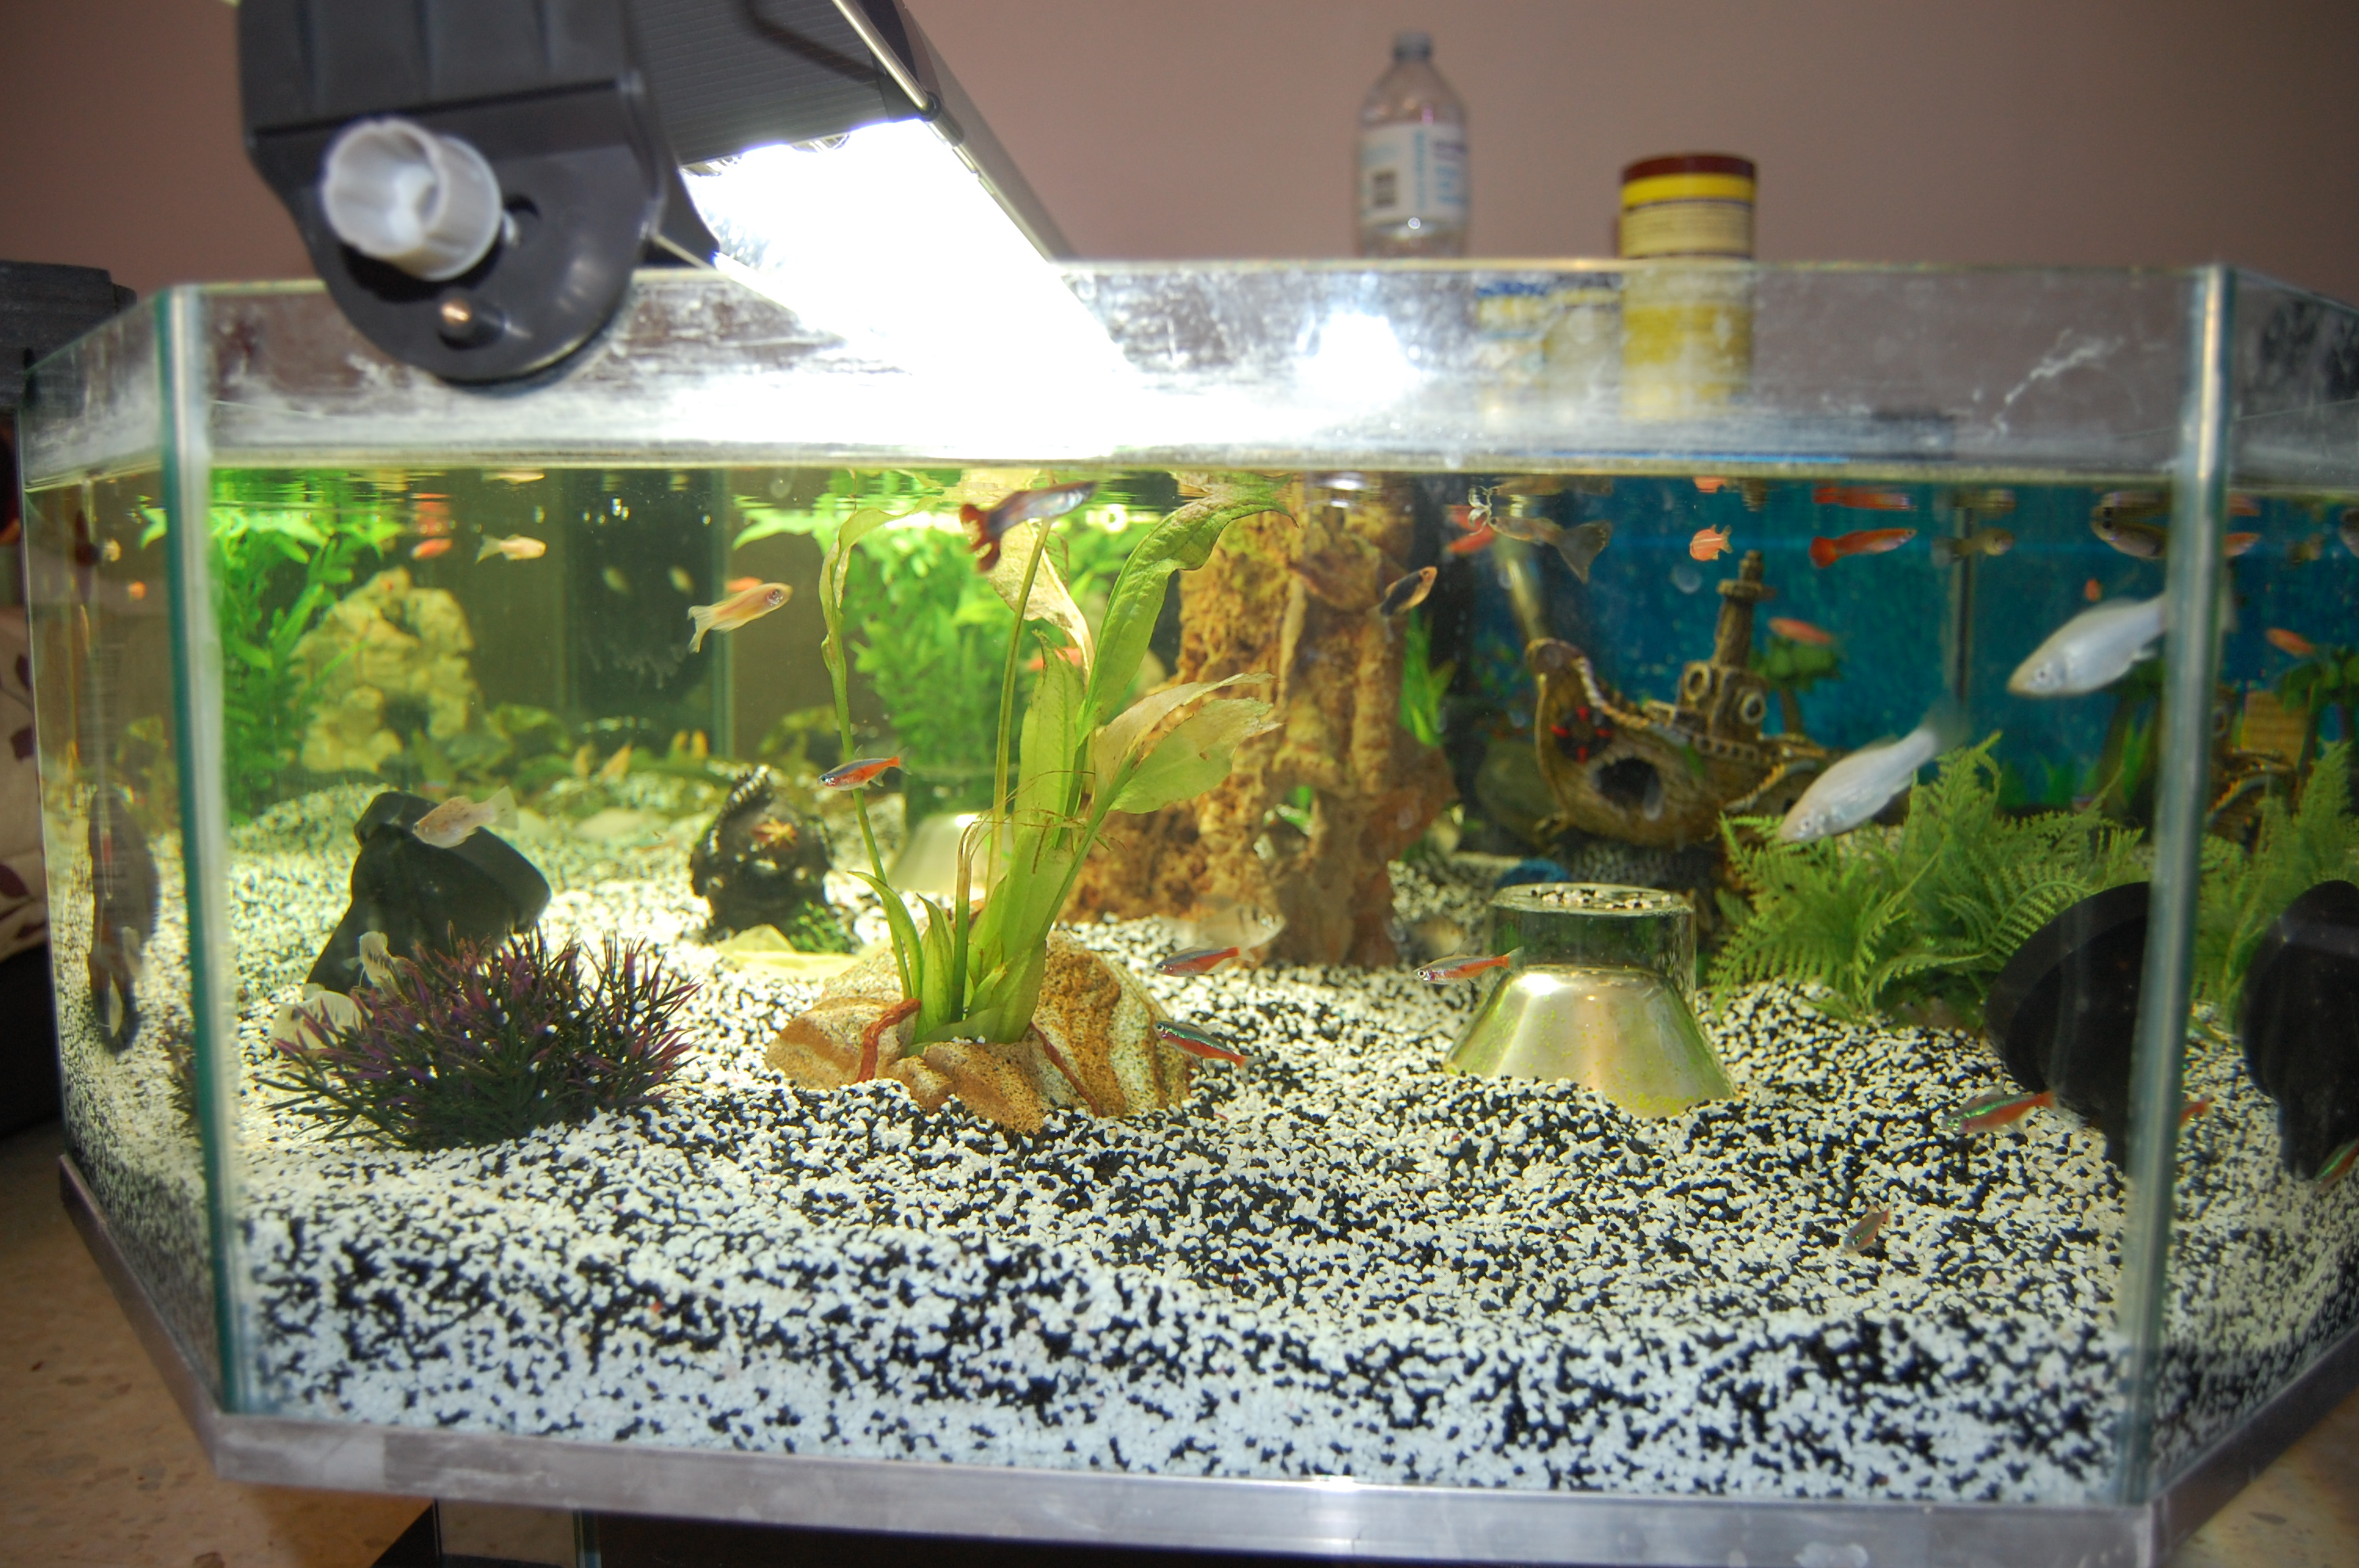 Dsc 0016 table basse aquarium fait maison lol lynka83 - Table basse fait maison ...